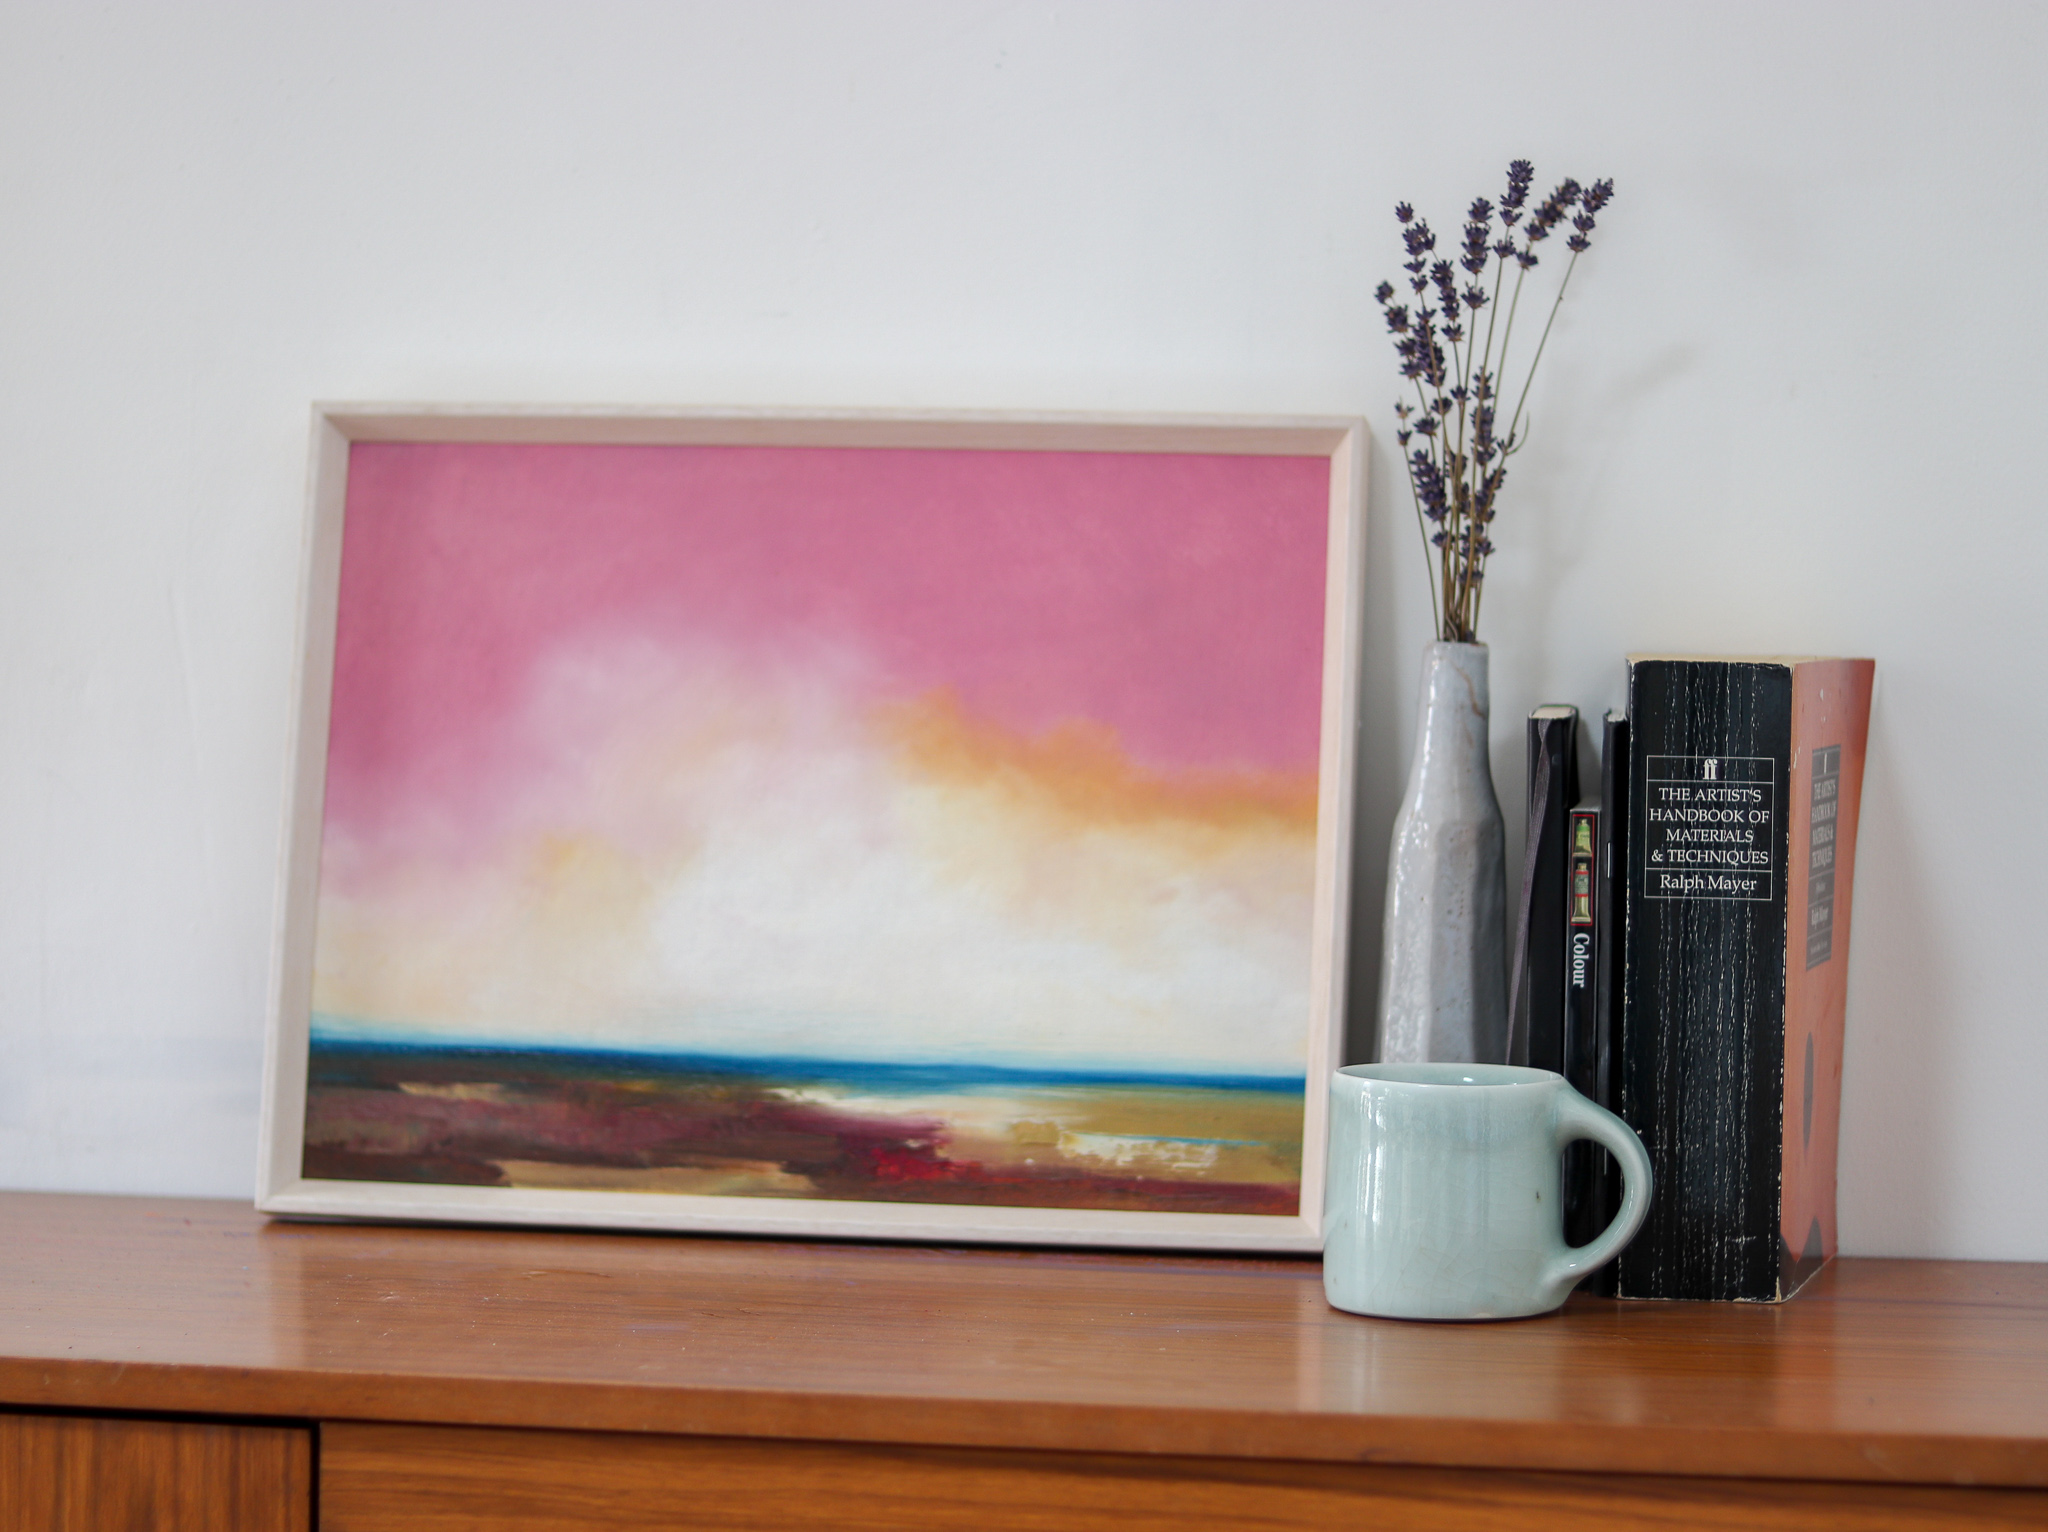 Tides Are Turning is an original seascape painting by Sophie Berger.